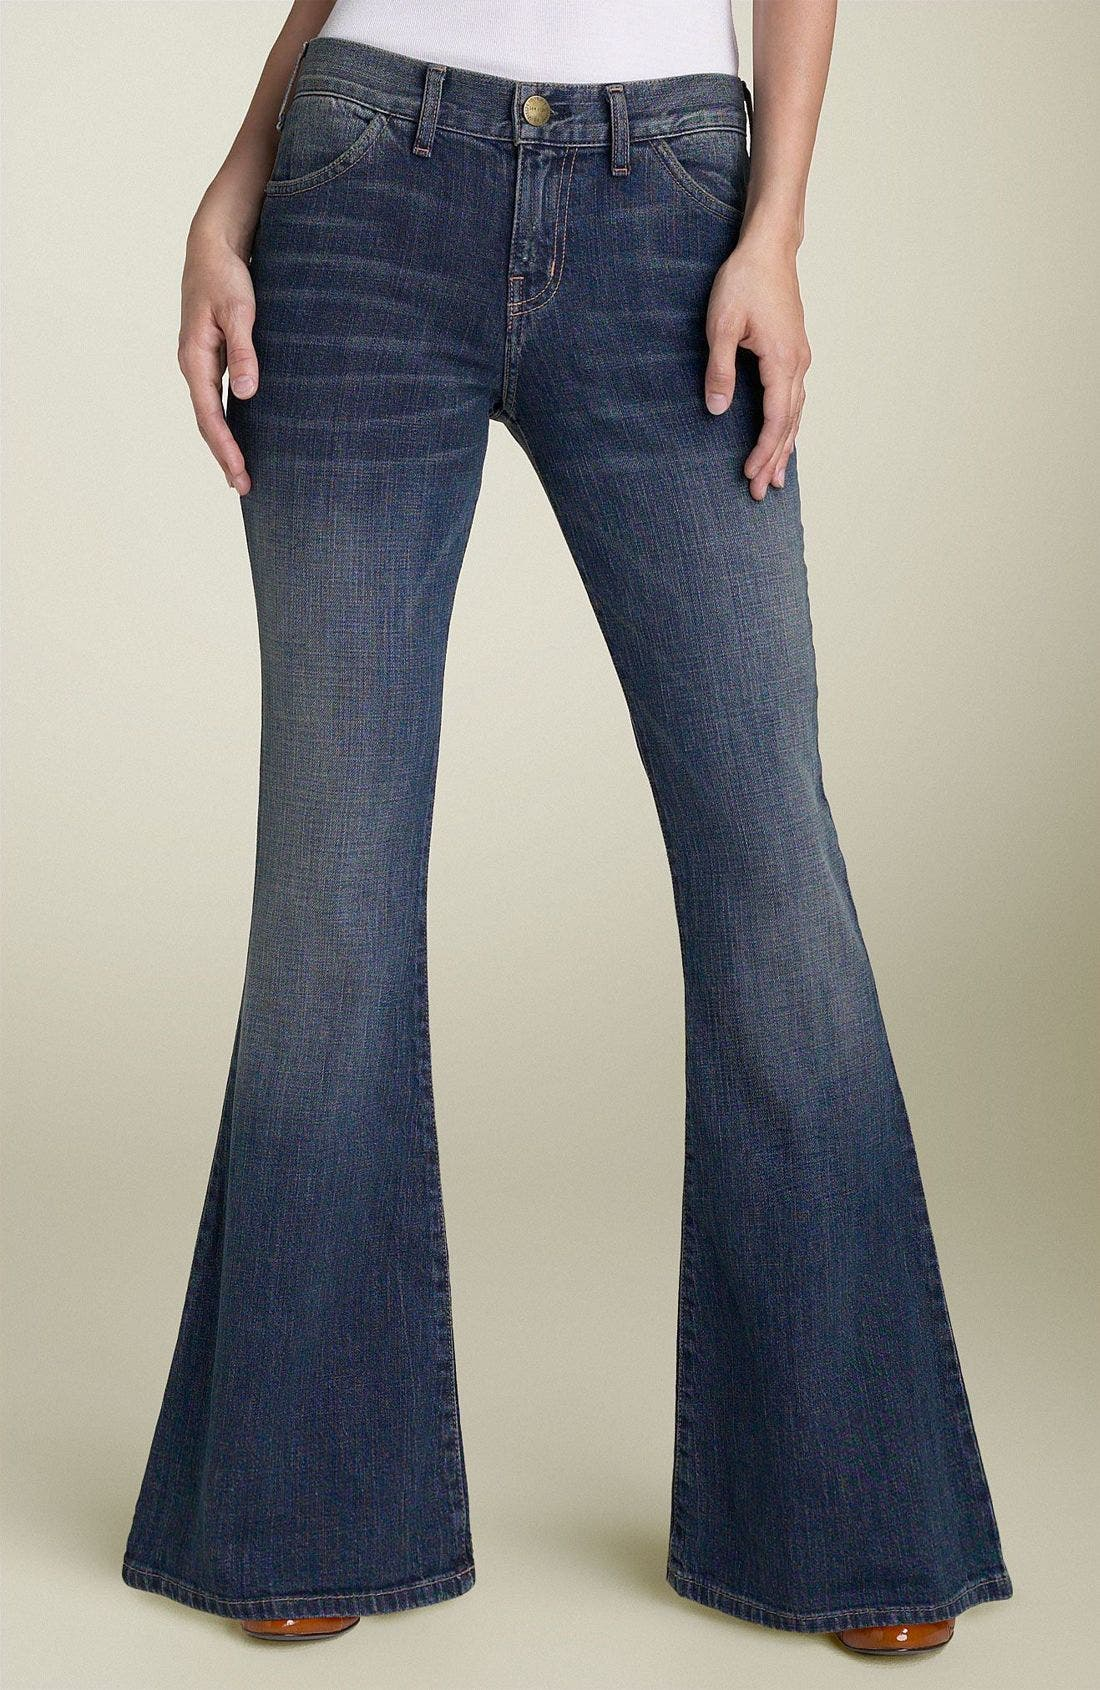 CURRENT/ELLIOTT 'The Elephant Bell' Flare Leg Stretch Jeans, Main, color, 465